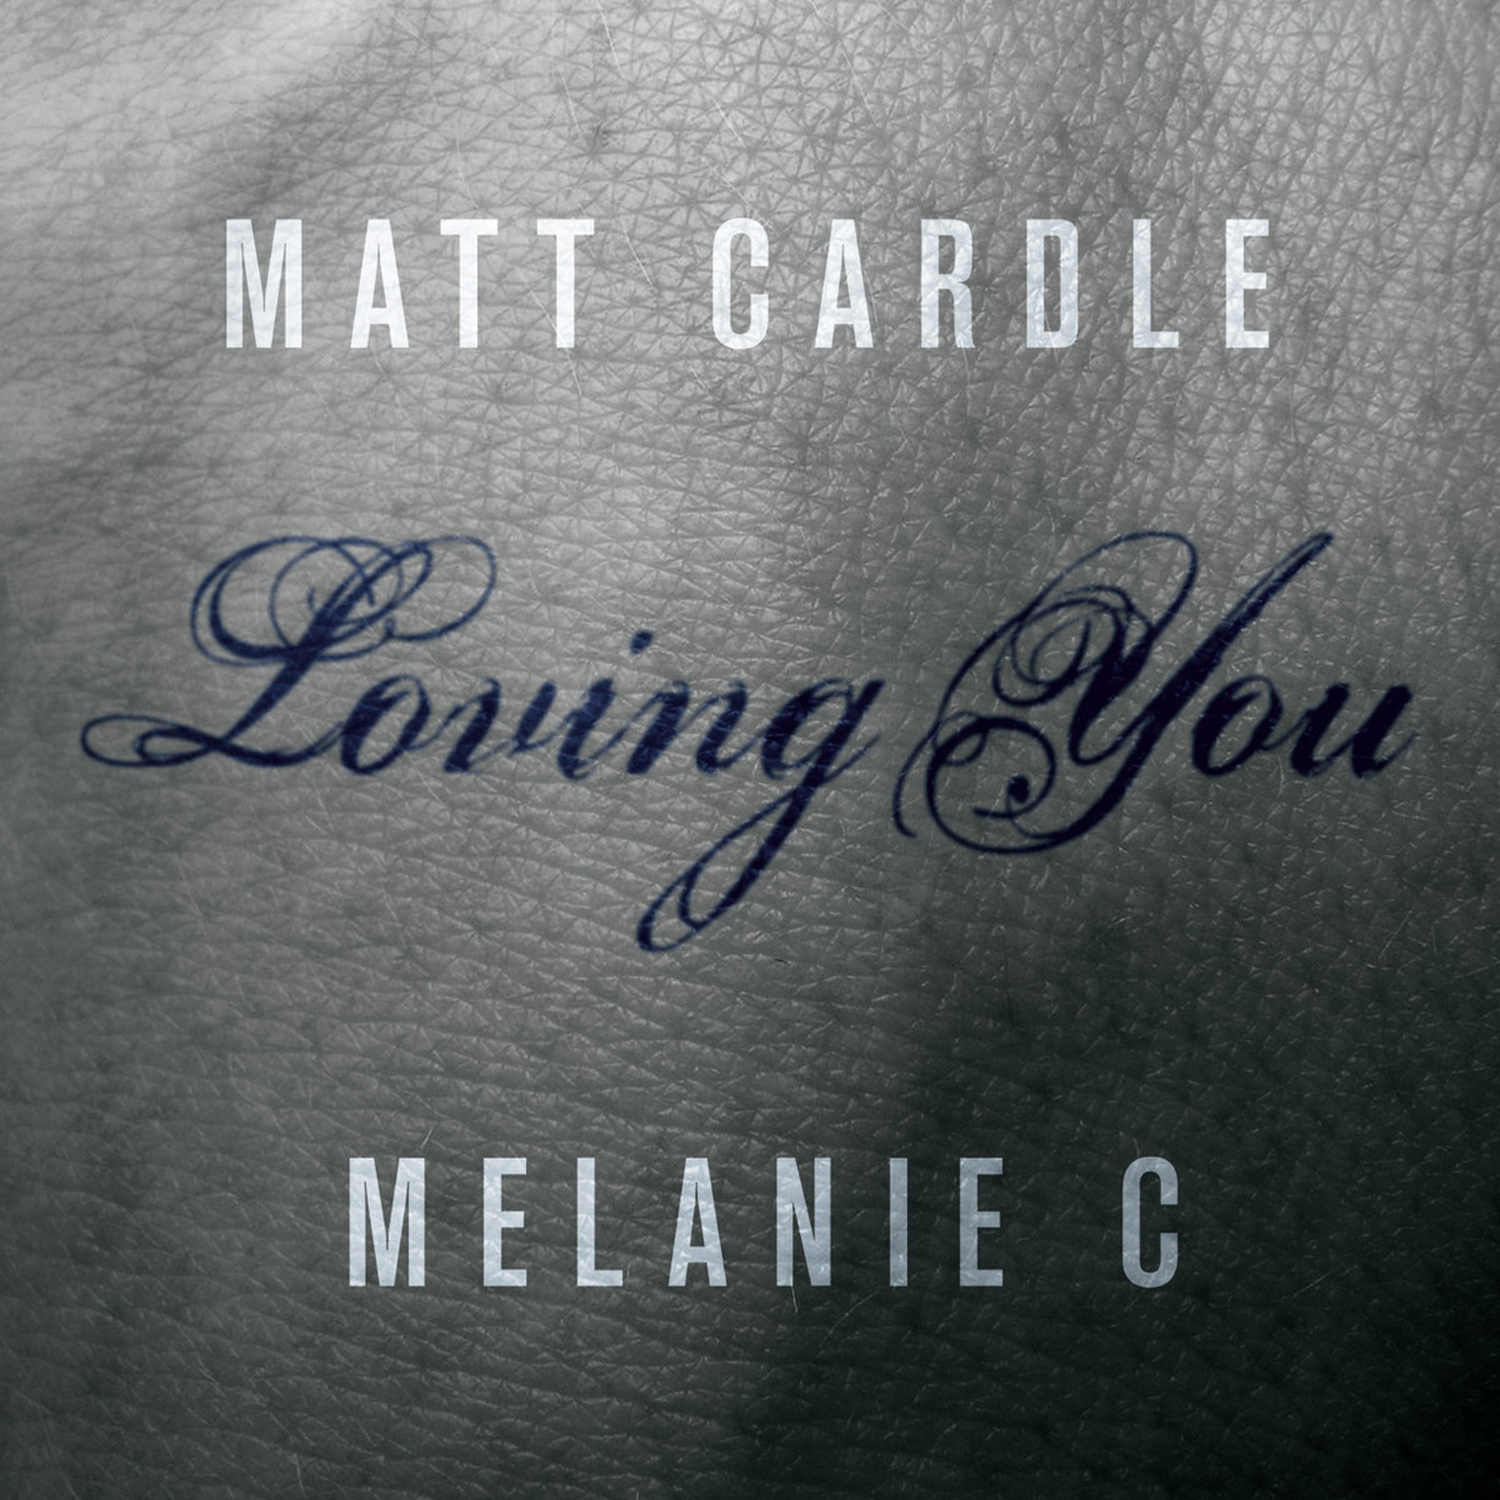 Matt Cardle & Melanie C - Loving You (Radio Edit)